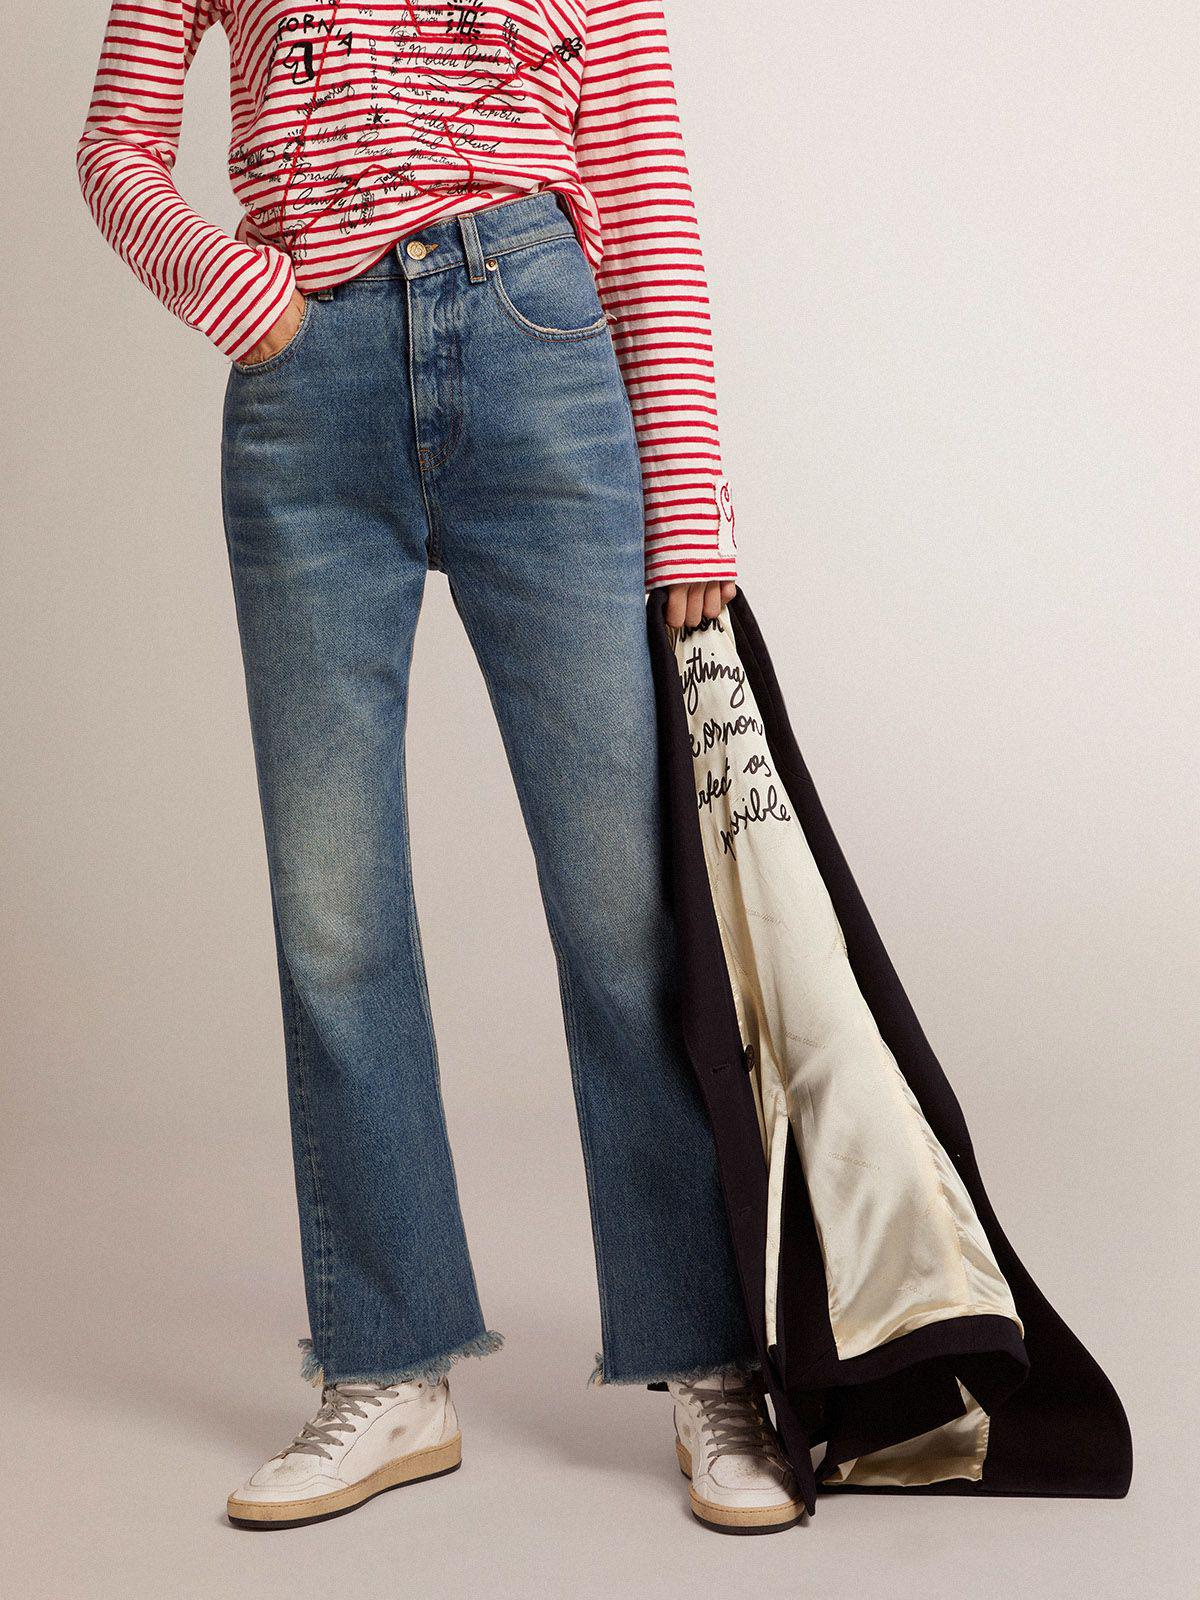 Golden Collection cropped flared jeans with a medium wash